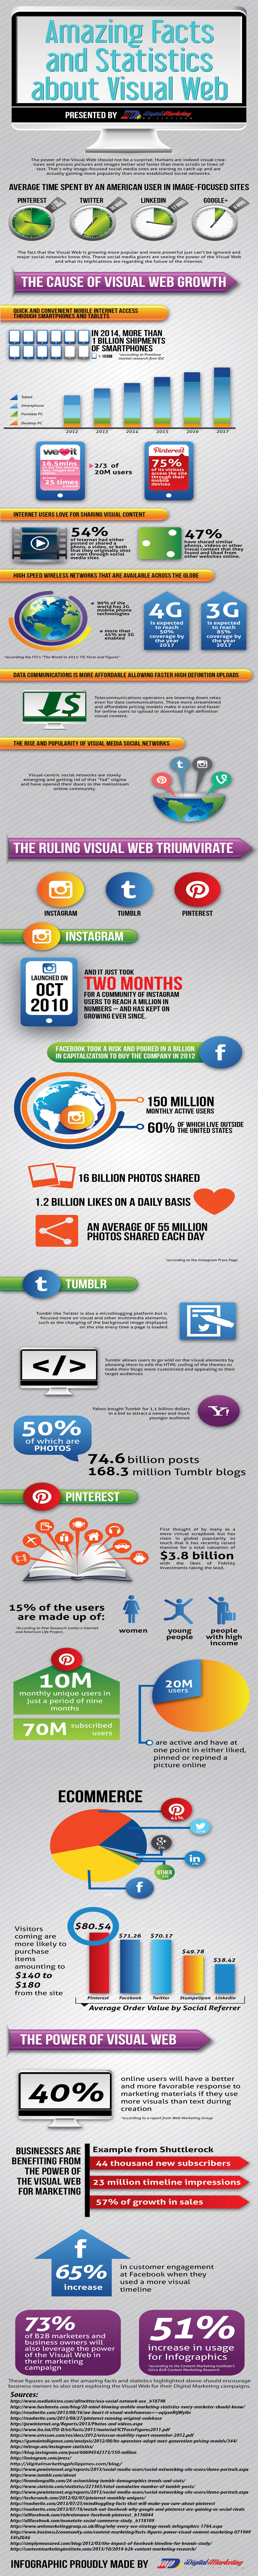 Amazing Facts and Statistics about Visual Web b2c